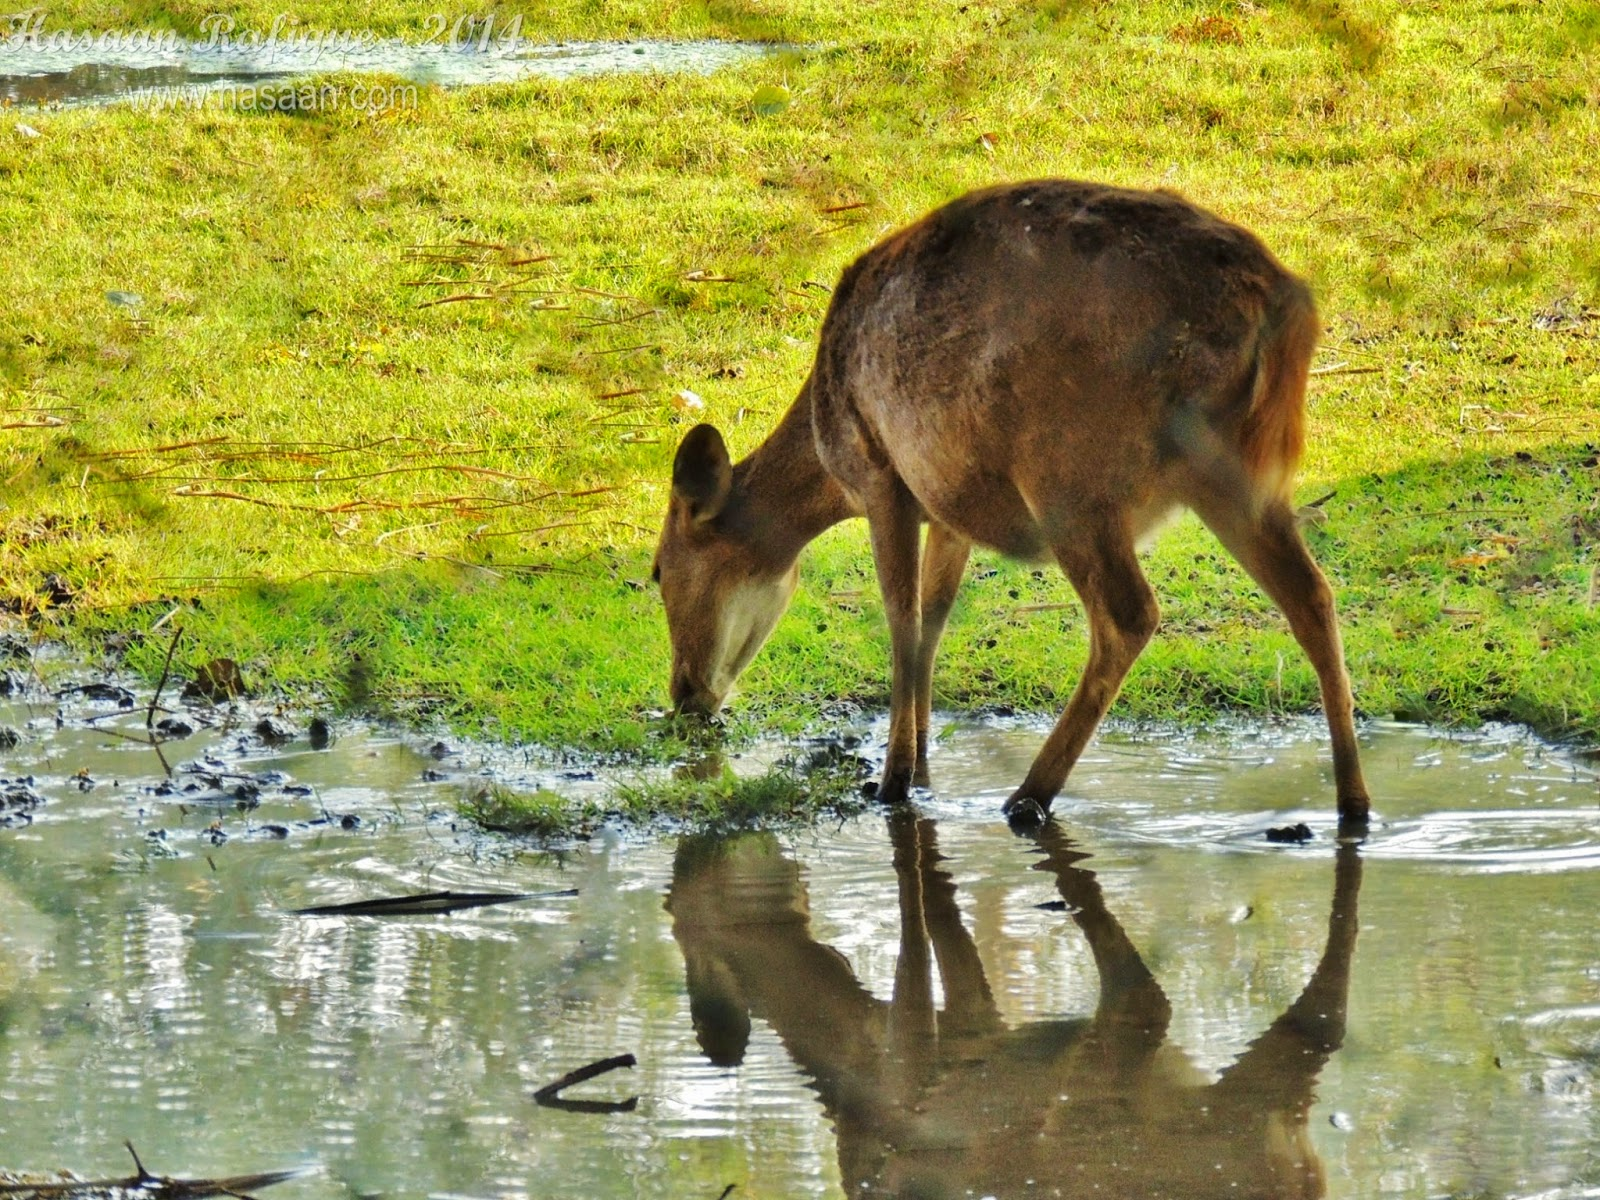 A deer drinking water.